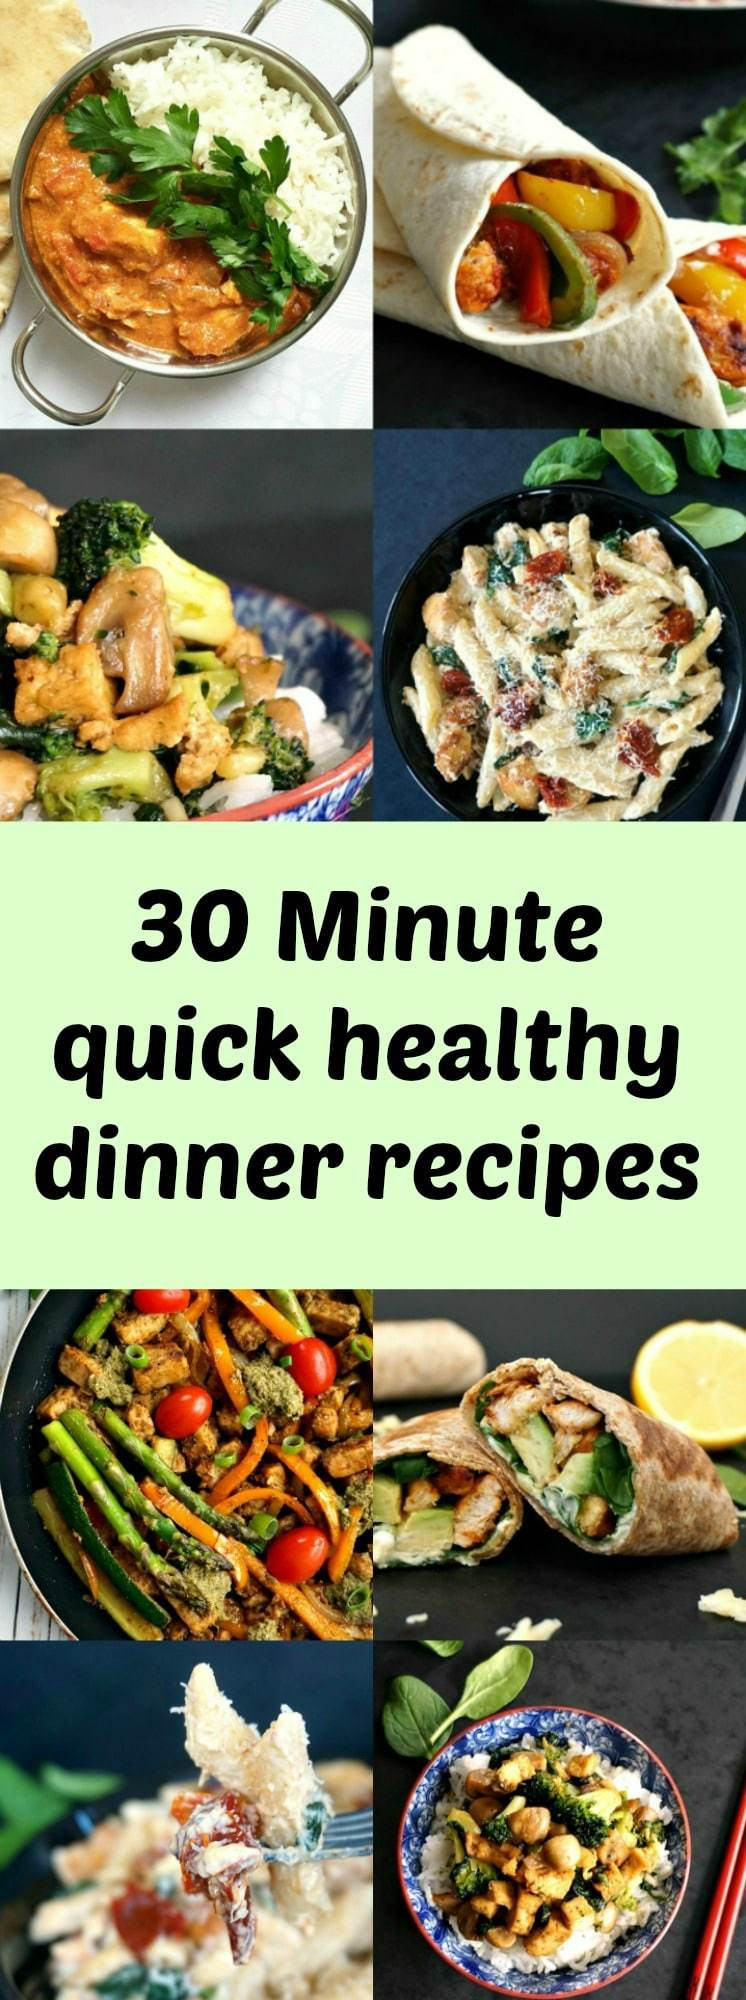 Fast Healthy Dinners  Top 28 30 Minute Dinner Recipes pineapple chicken 30